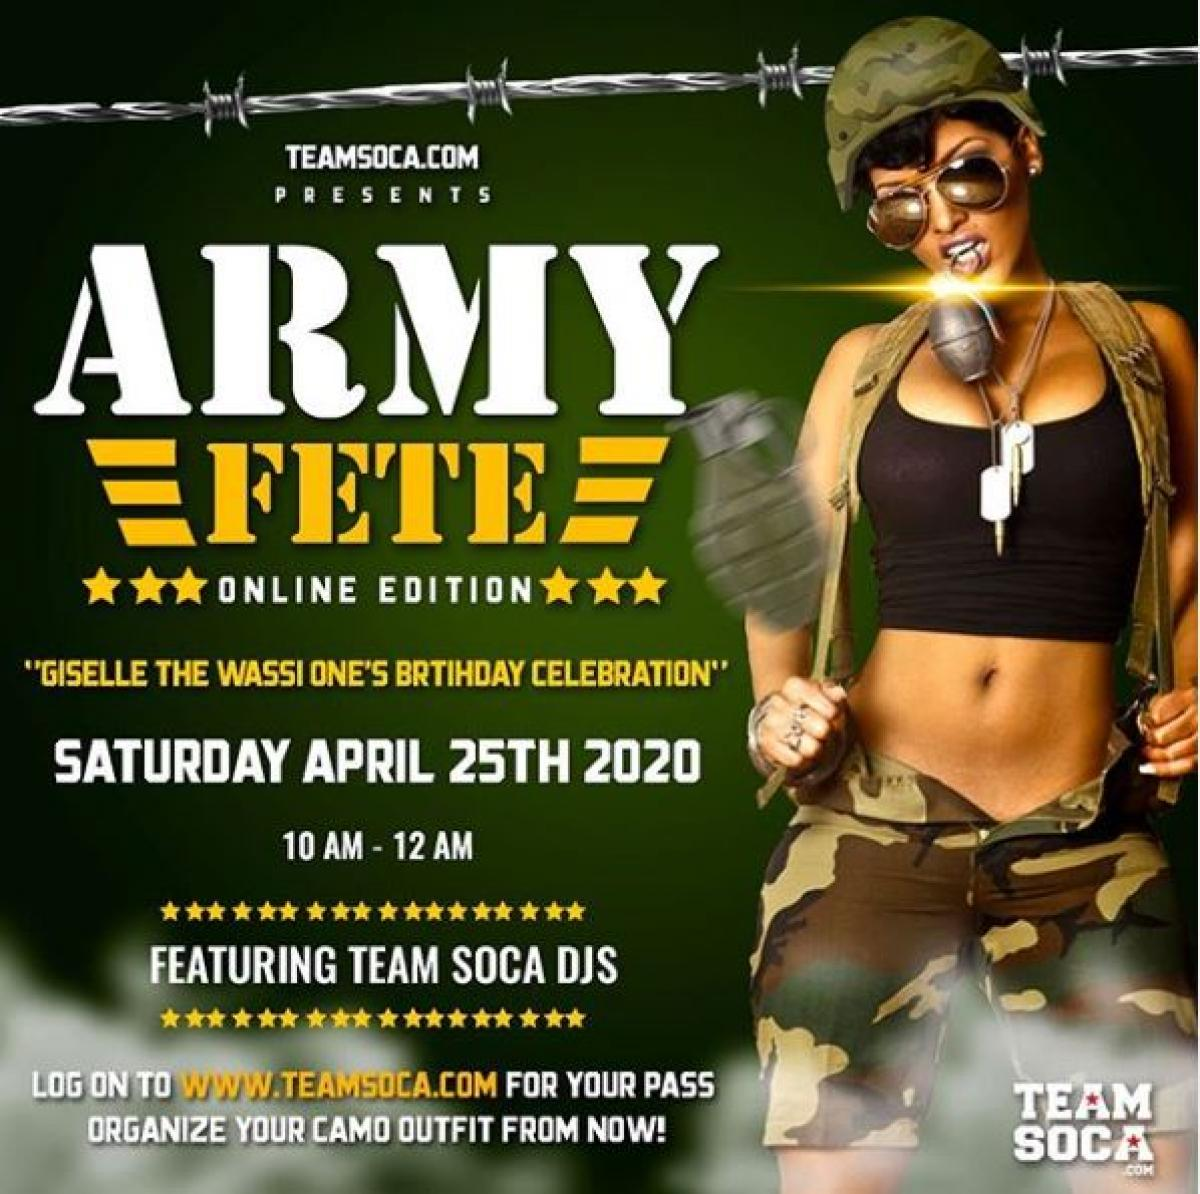 Army Fete Online Edition flyer or graphic.